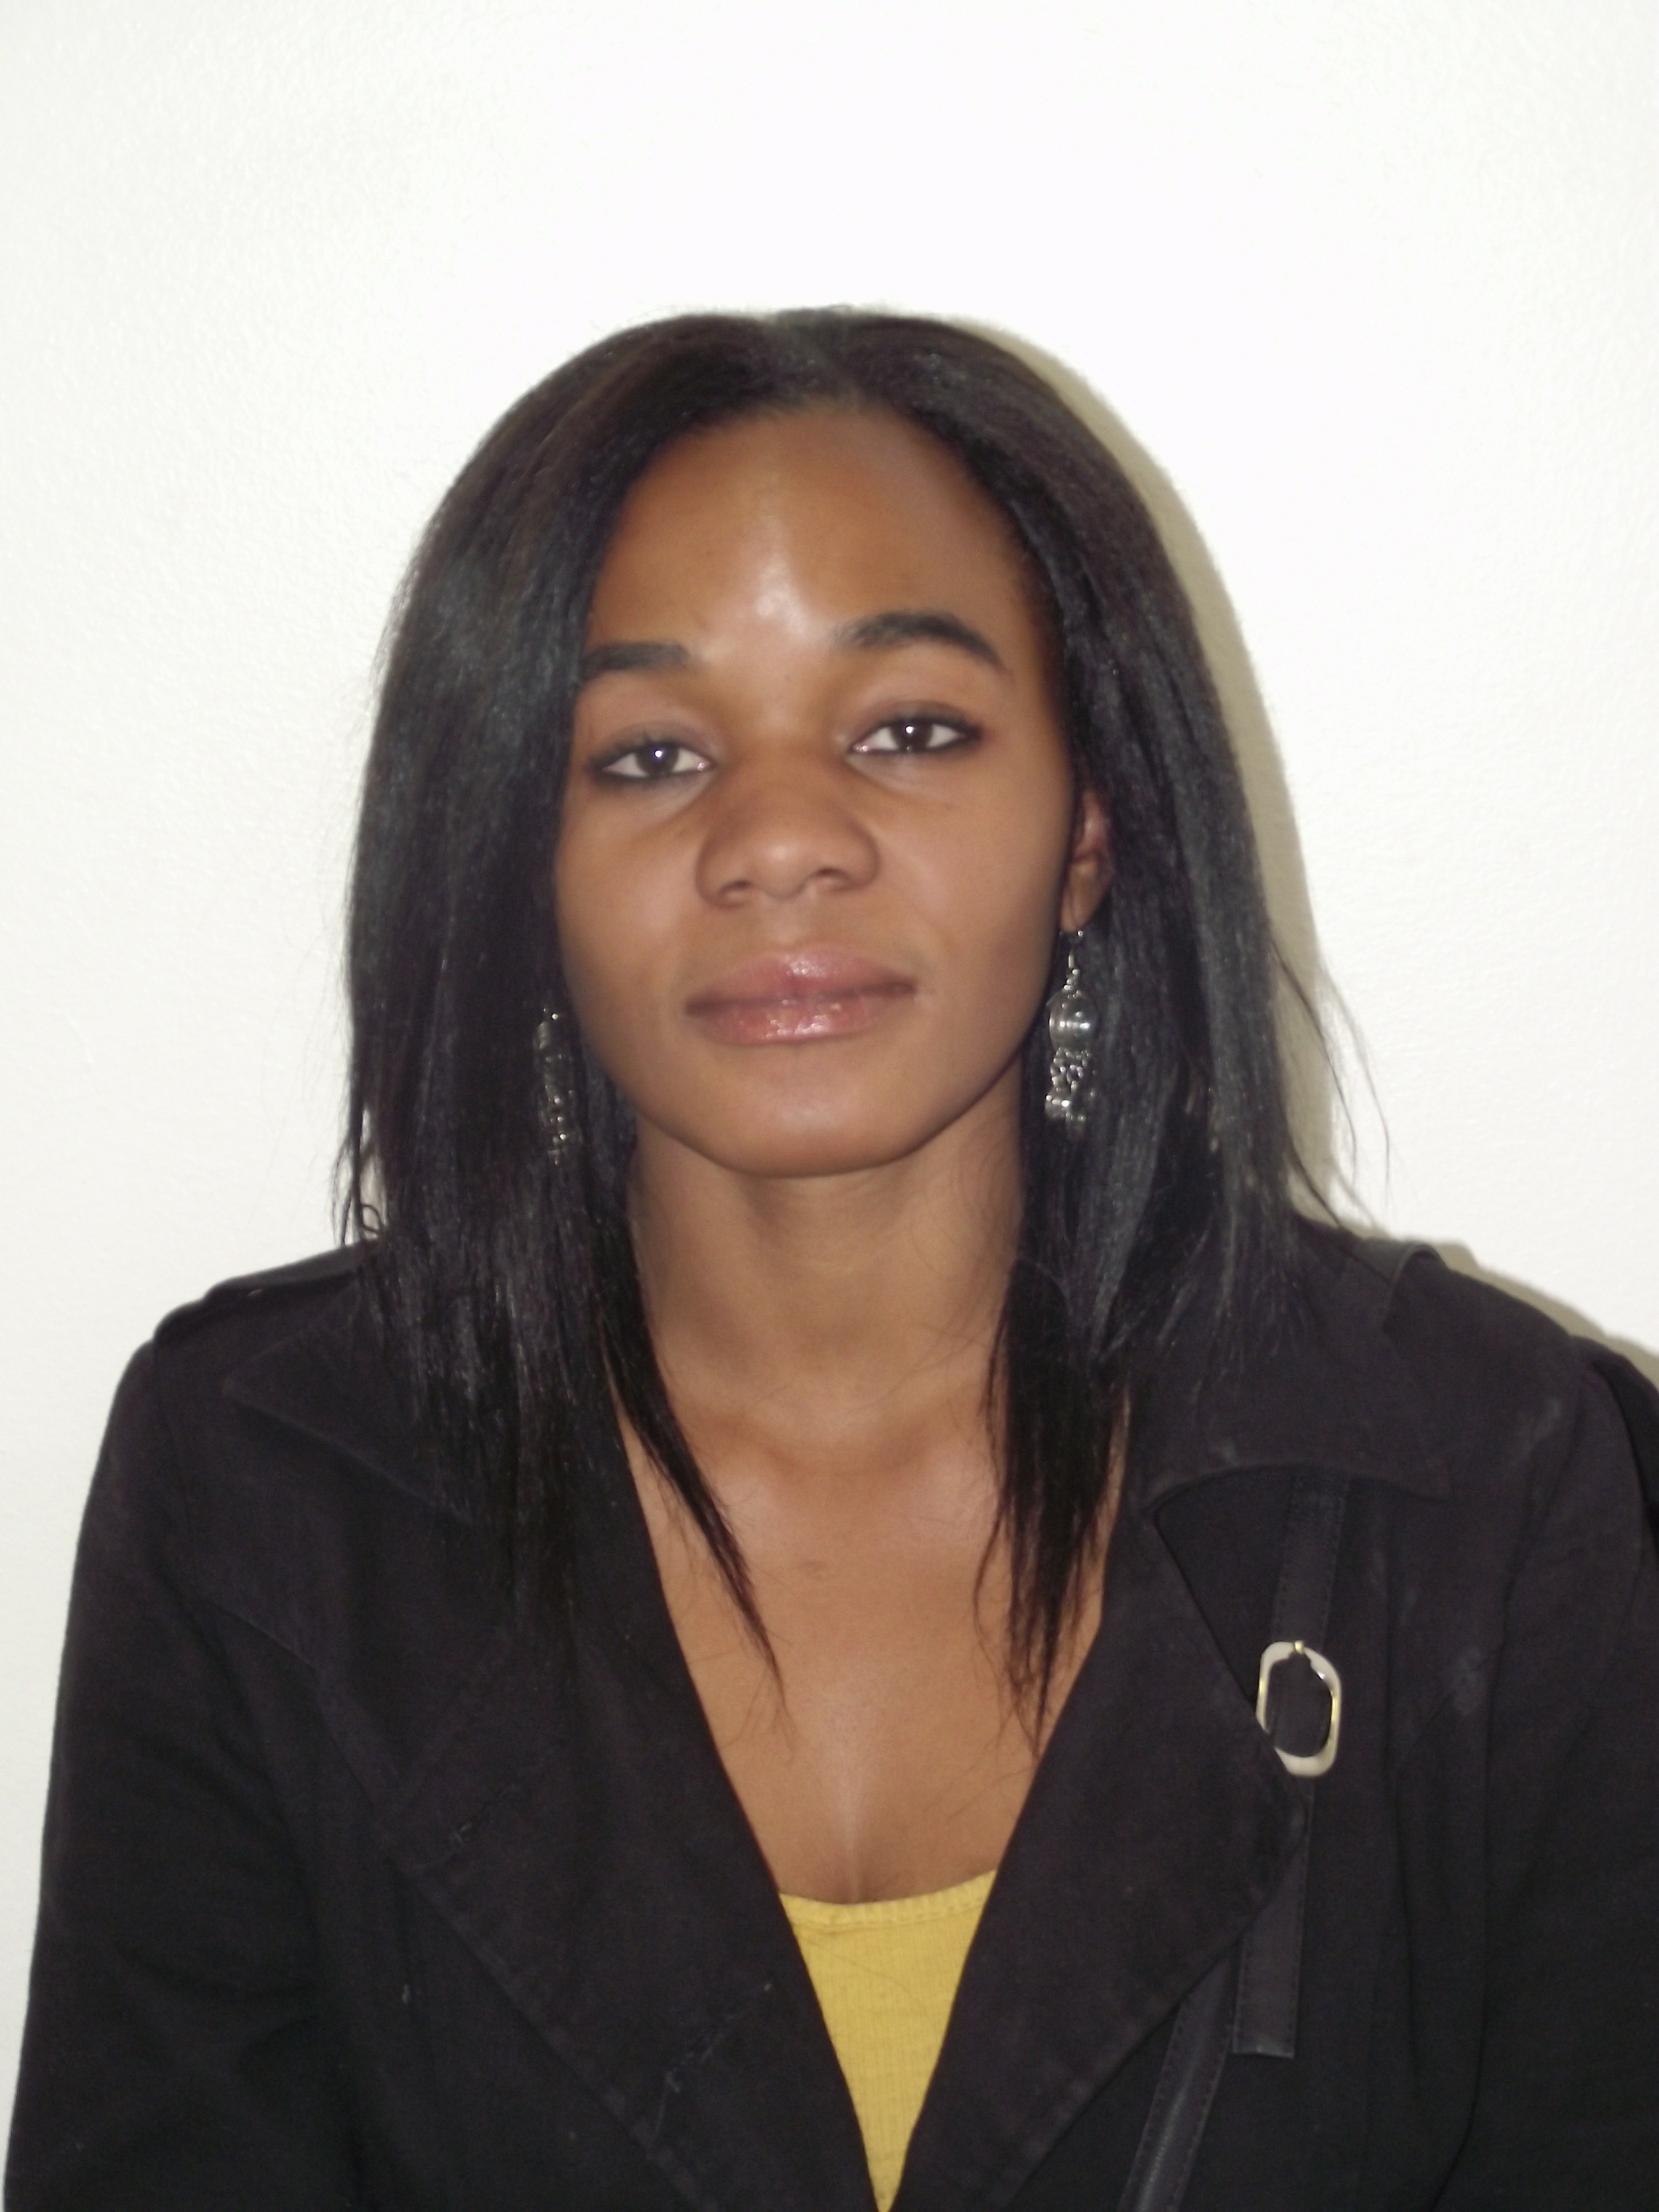 Dr. Chrystelle Wedi (South Africa At Large & St. Hugh's 2012)